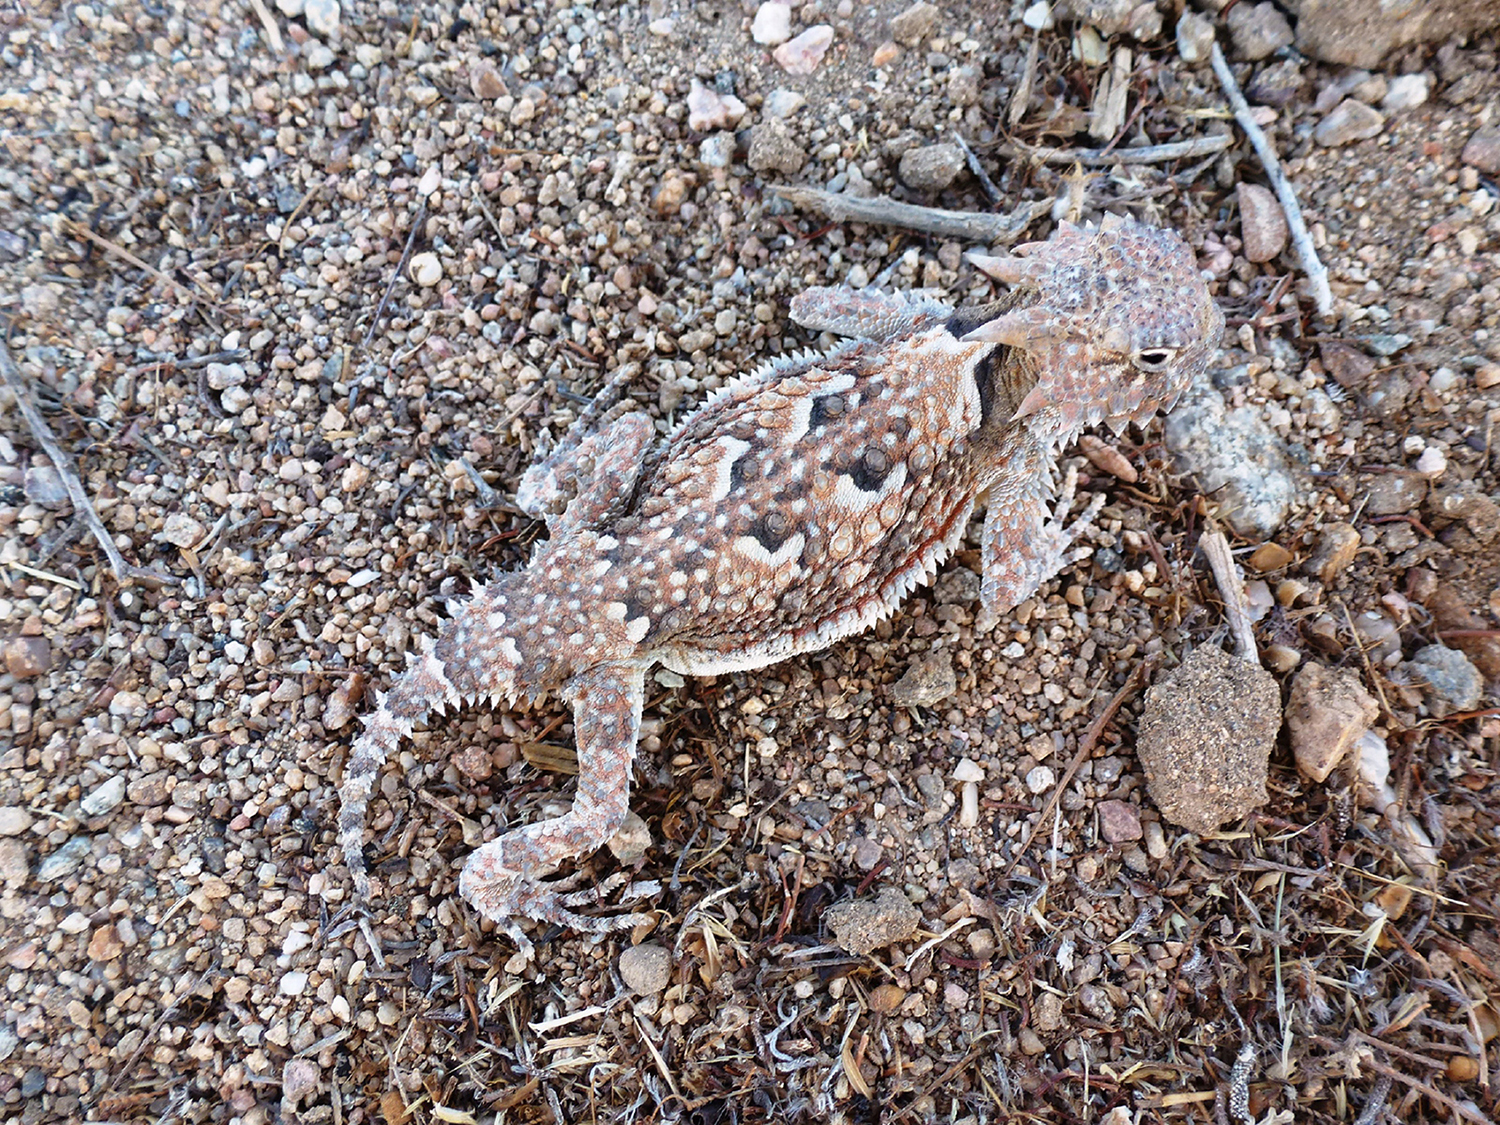 The Fantasic Horny Toad